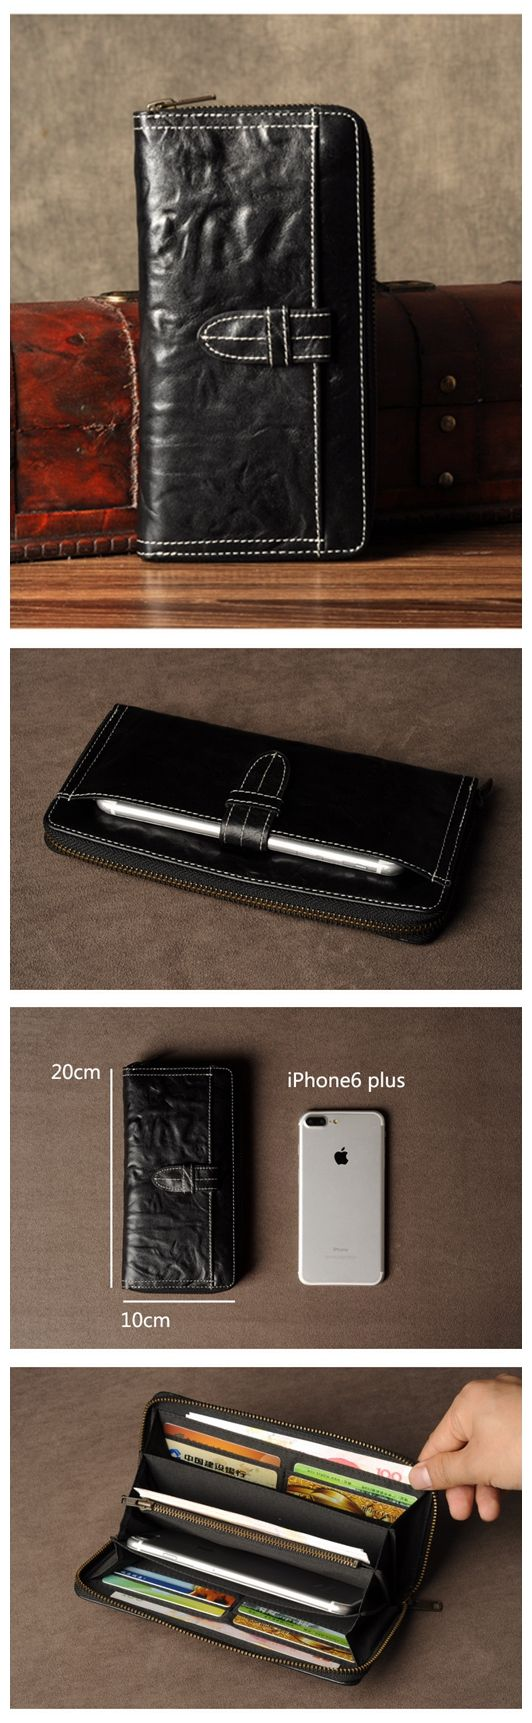 LEATHER WALLET,MENS LEATHER WALLET, LEATHER MONEY CLIP WALLET,HANDMADE LEATHER PHONE CASE GZ042